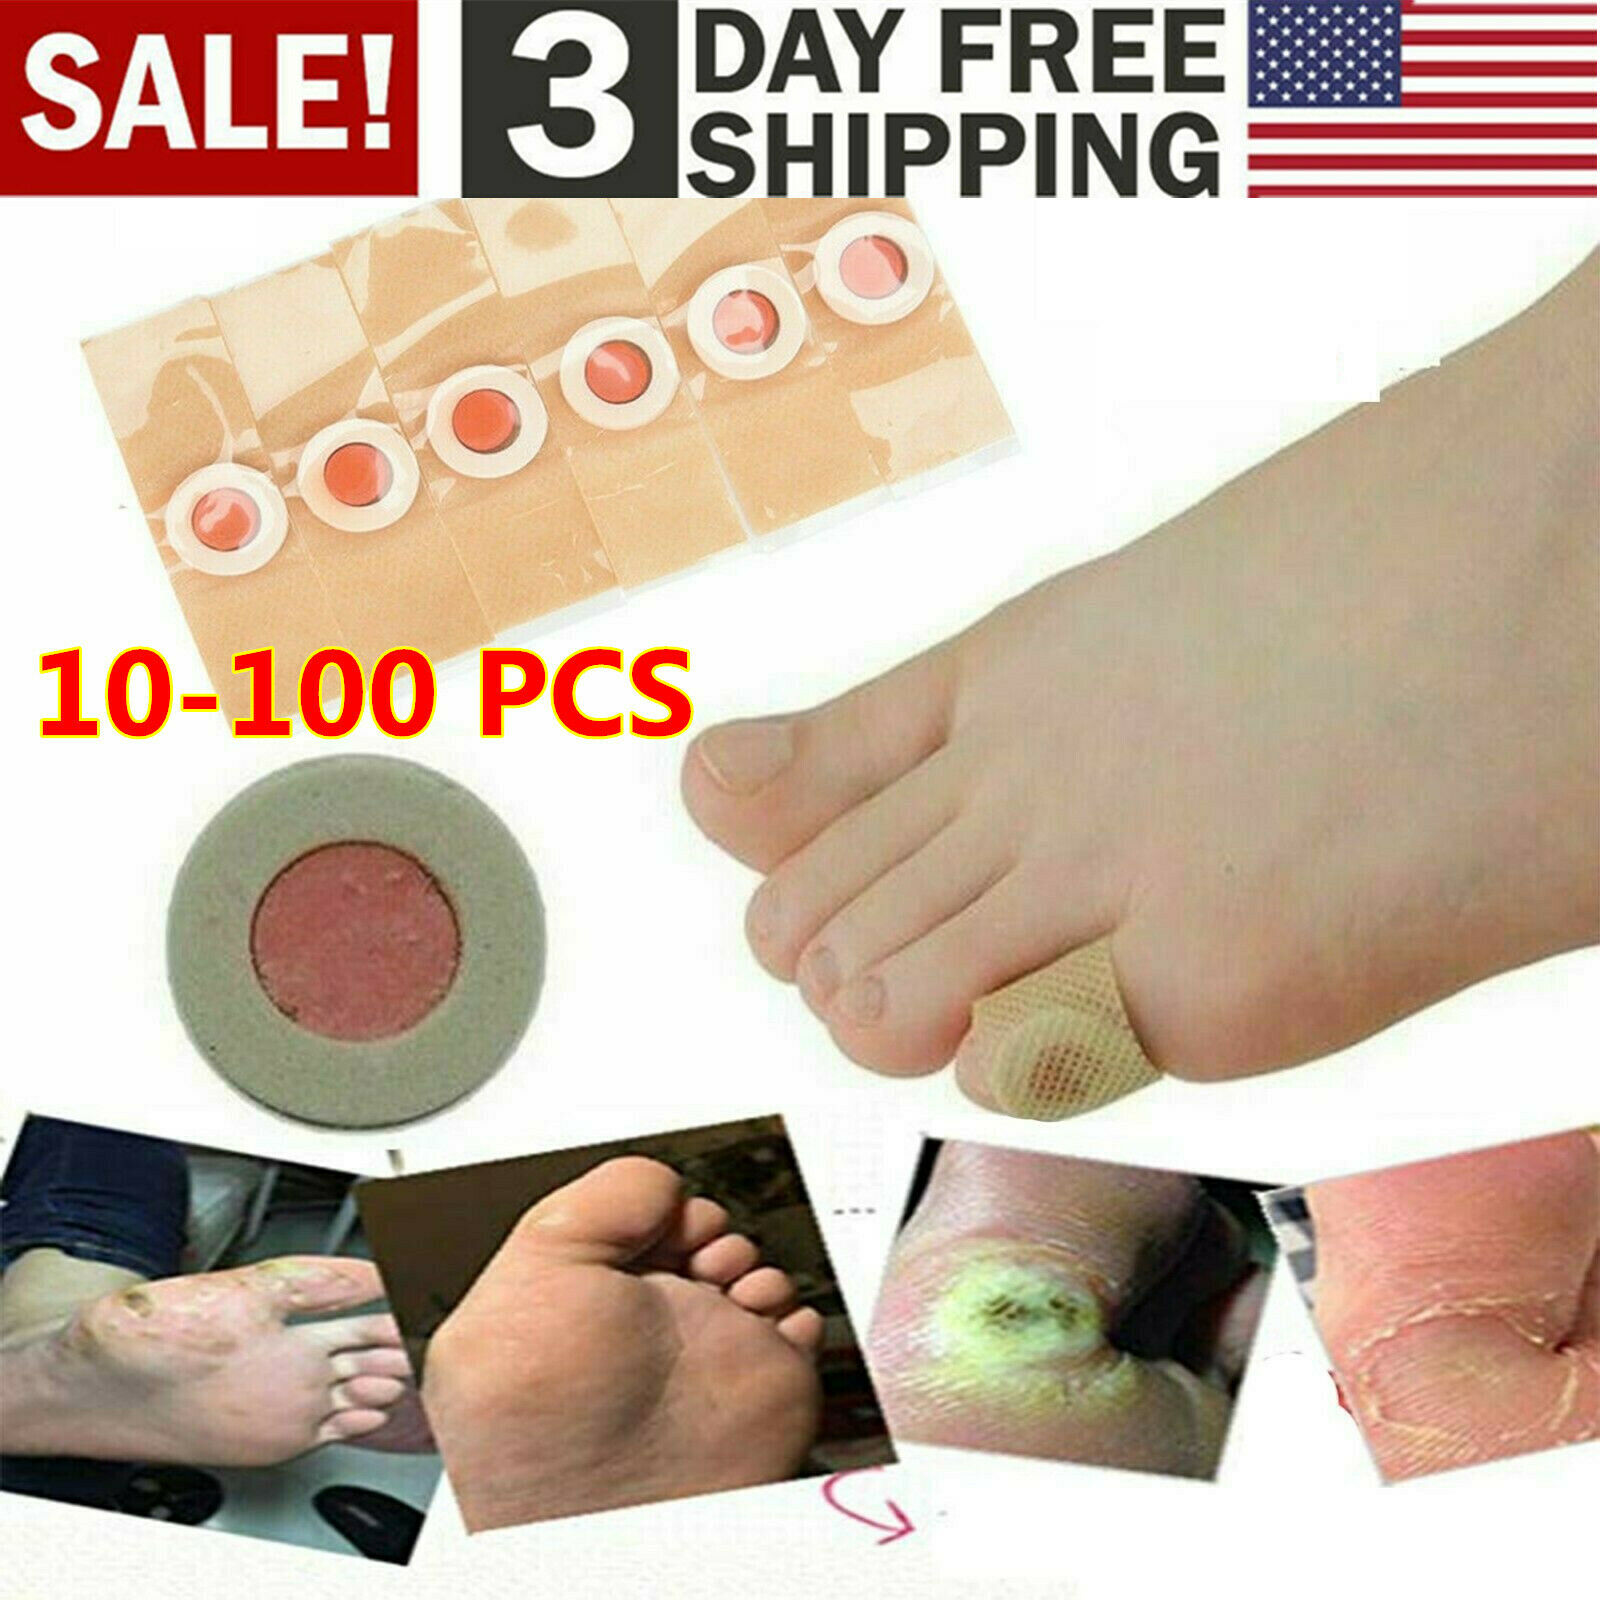 10x Medical Plaster Plantar Wart Corn Removal Foot Care Stickers Relief For Sale Online Ebay